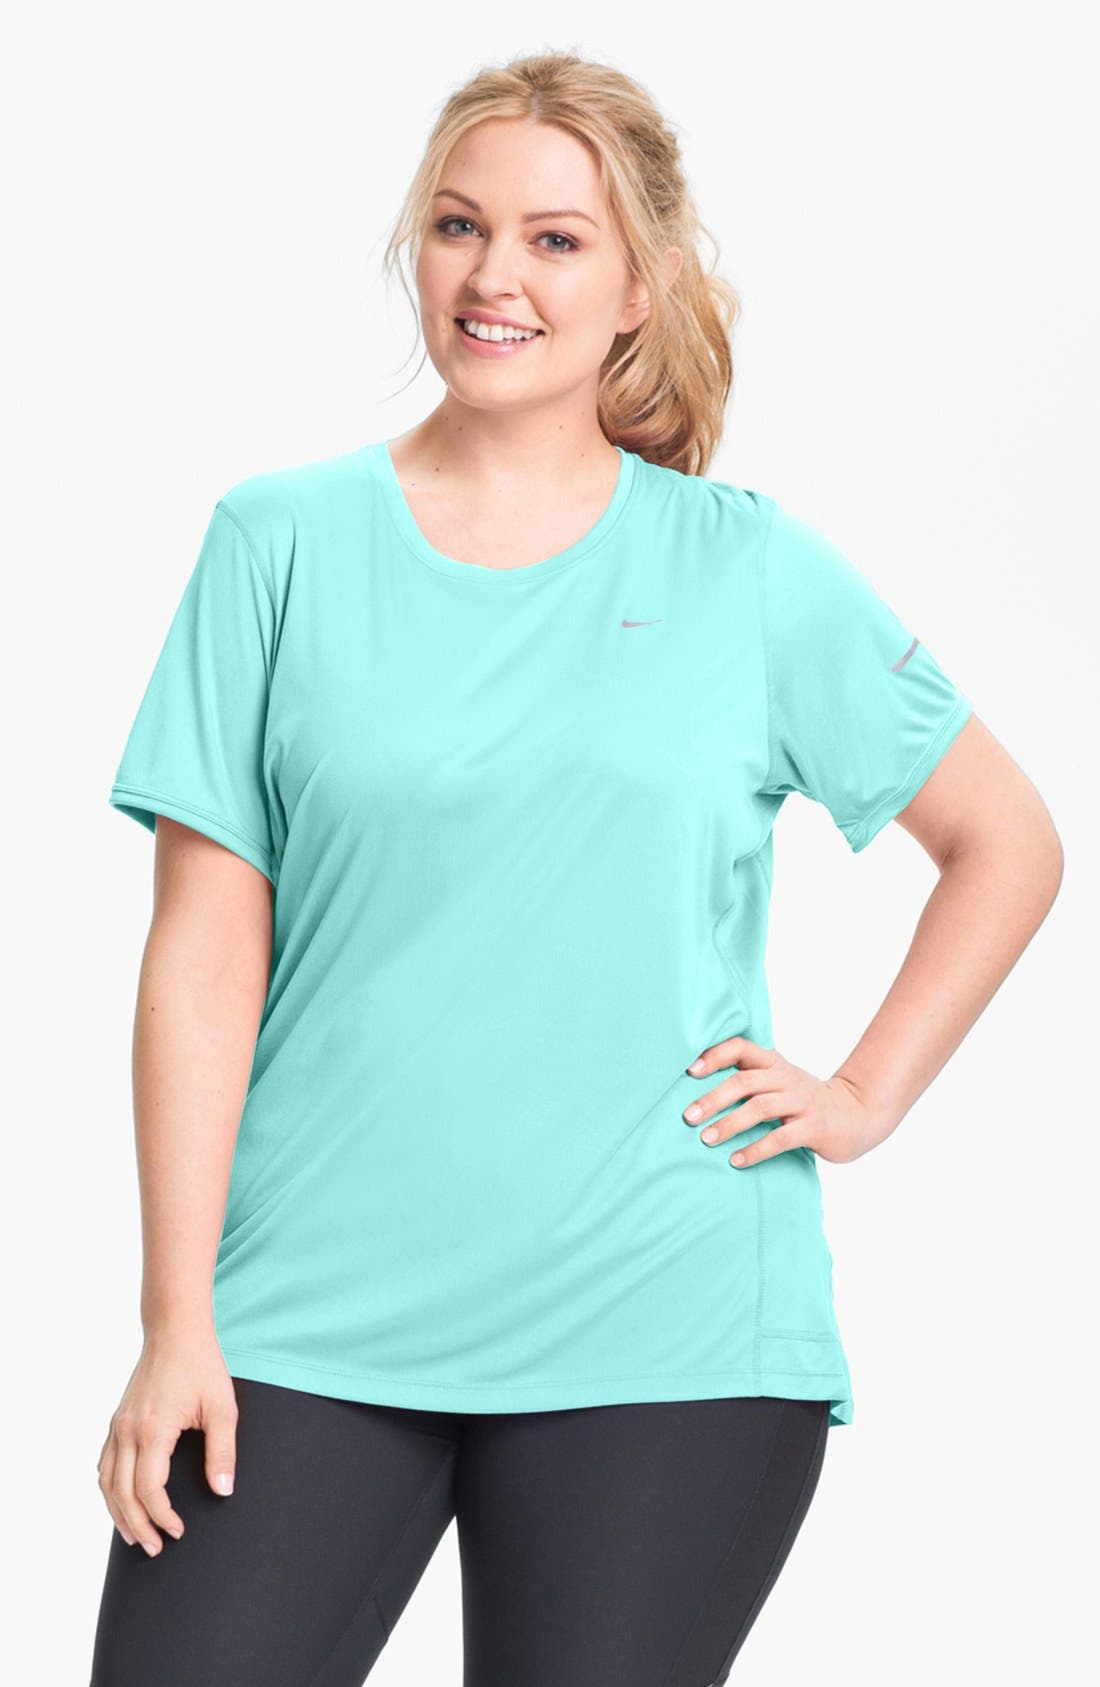 Alternate Image 1 Selected - Nike 'Miler' Short Sleeve Tee (Plus Size)